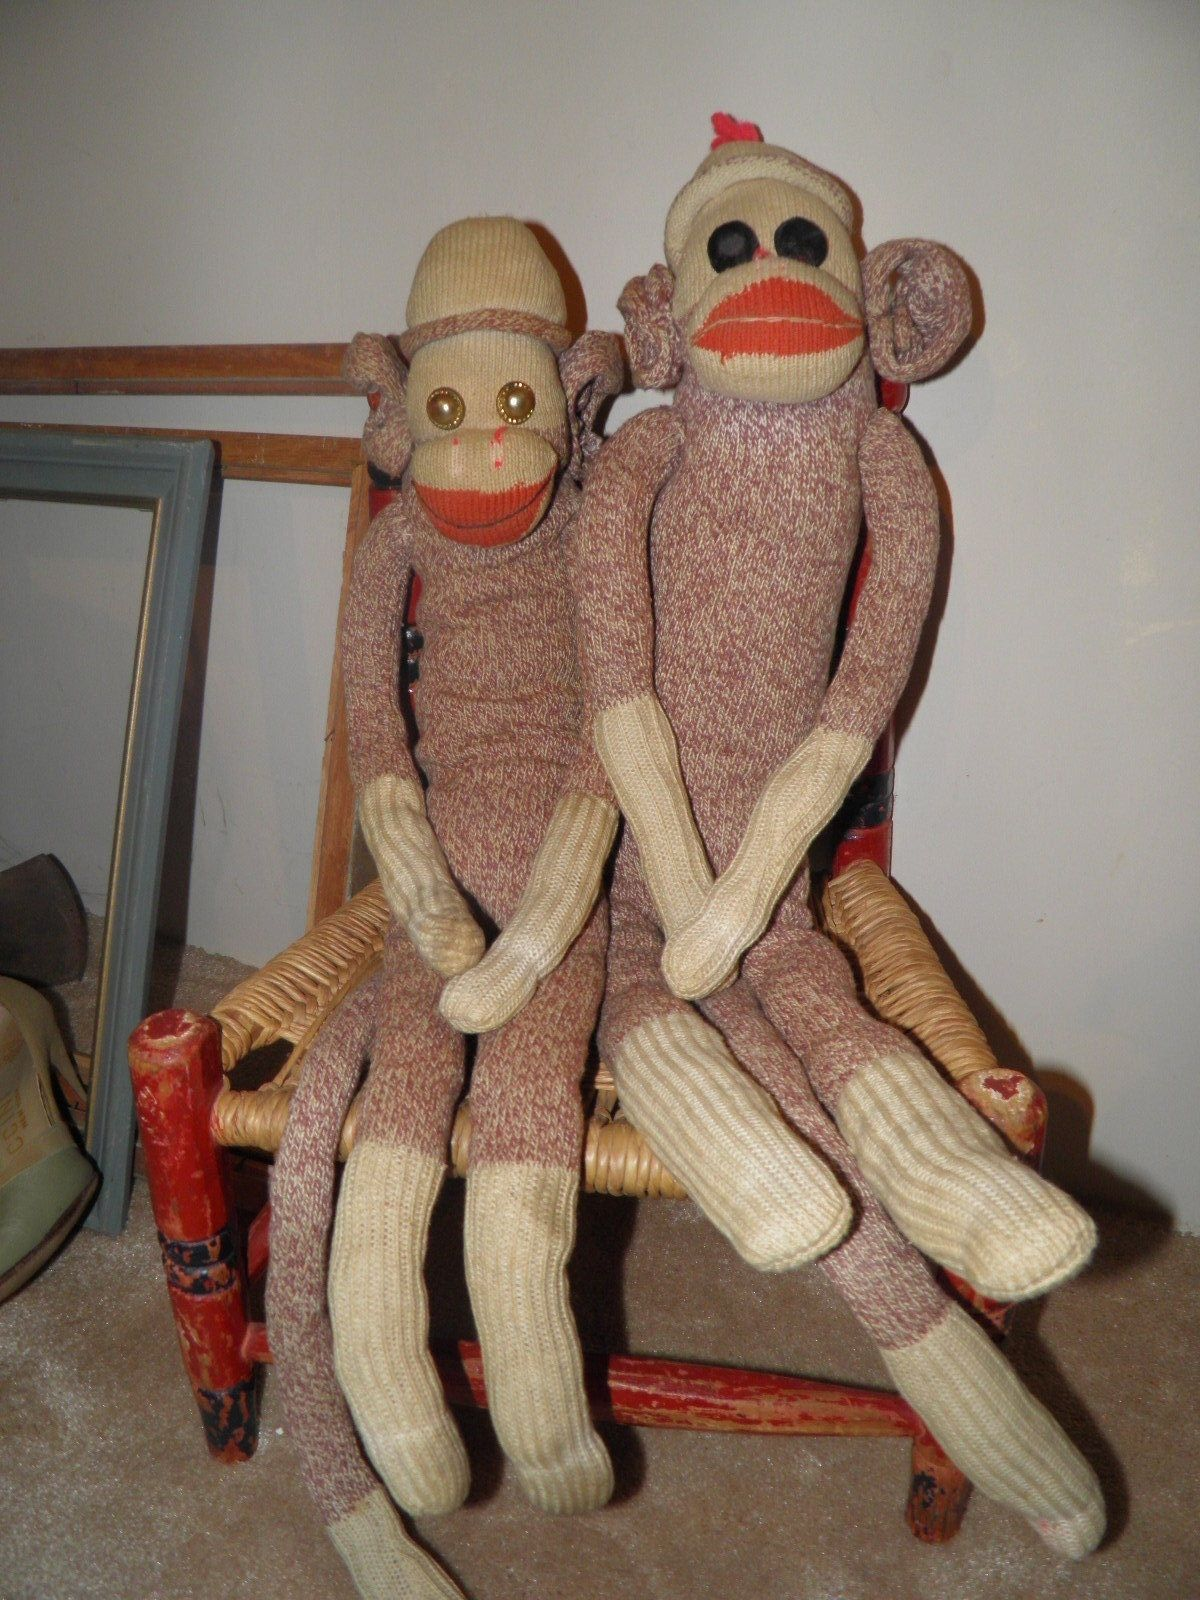 Remarkable, rather Sock puppy toy vintage necessary